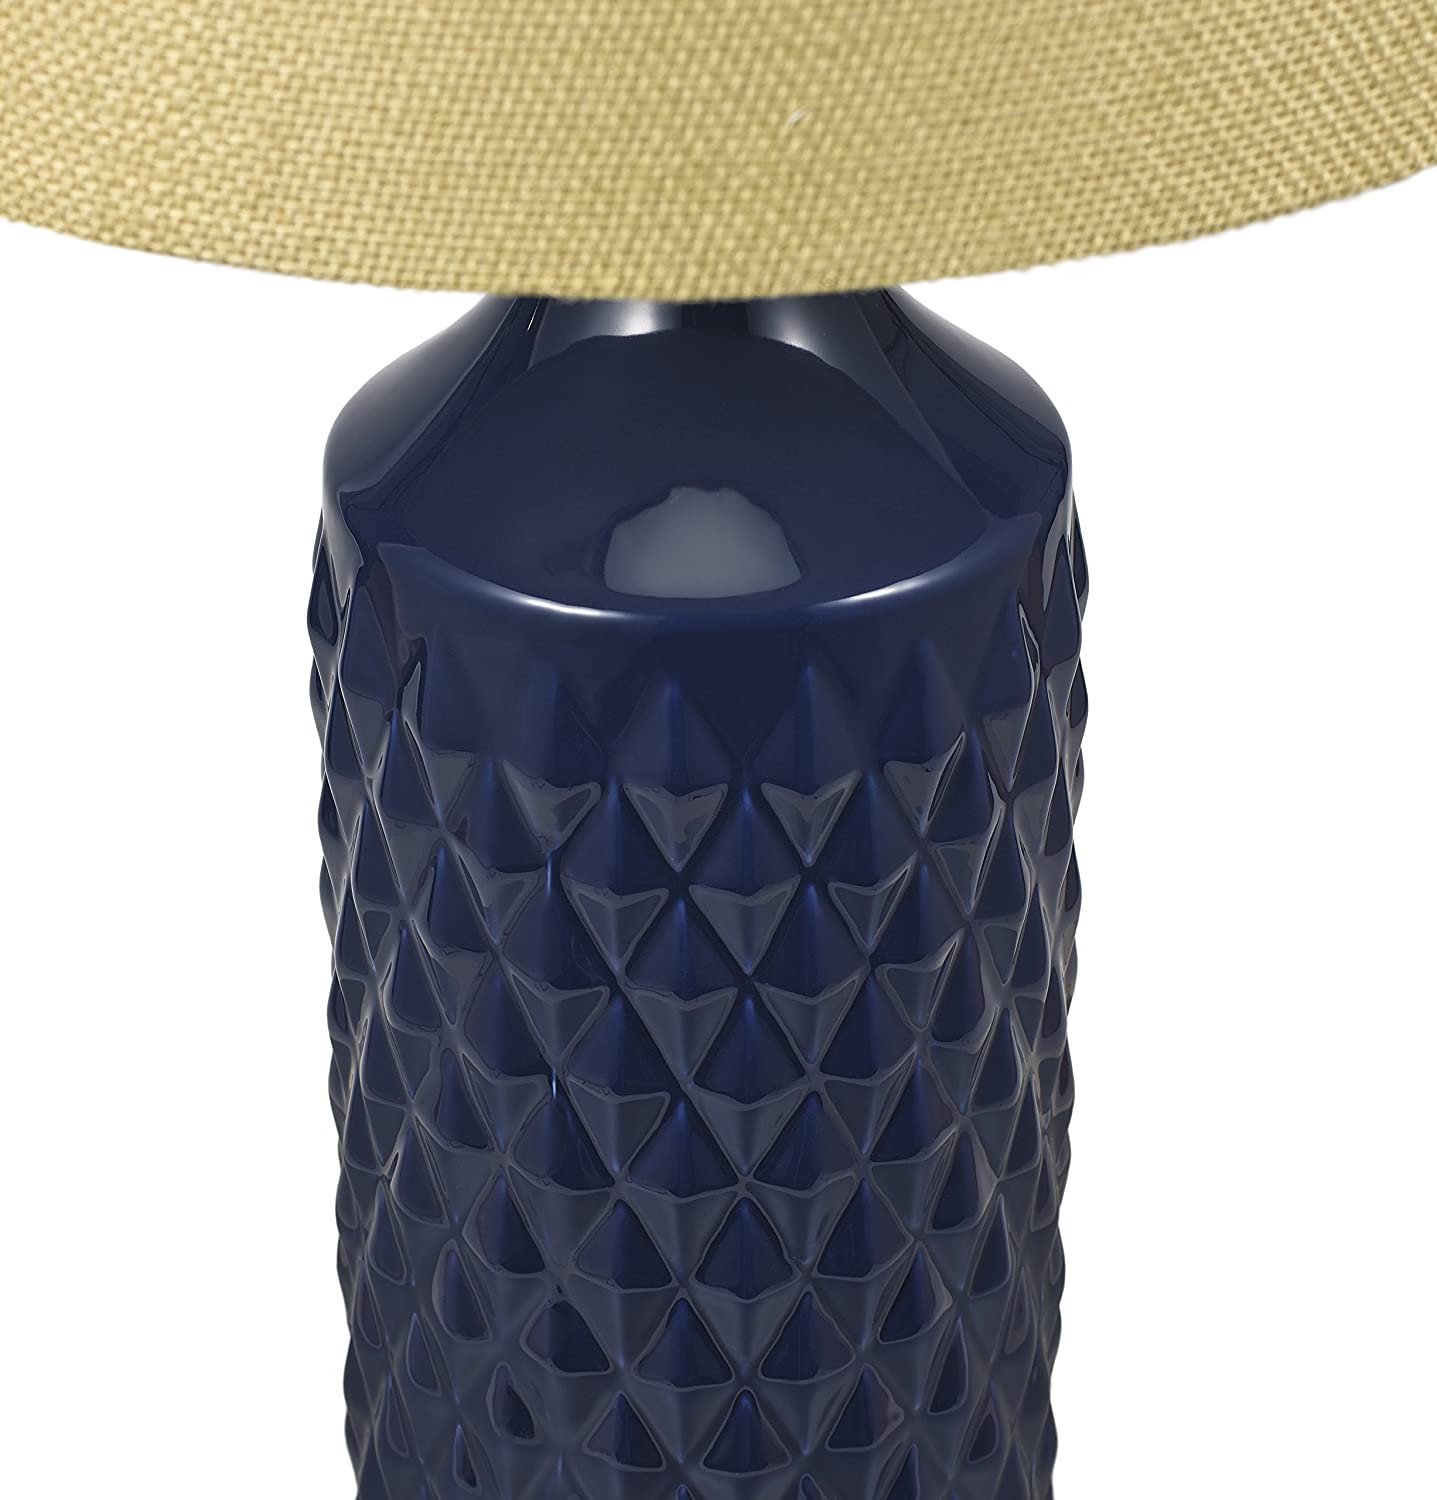 26.5 Light Blue Transitional 3-Way Geometric Quilted Ceramic Table Lamp with Linen Shade